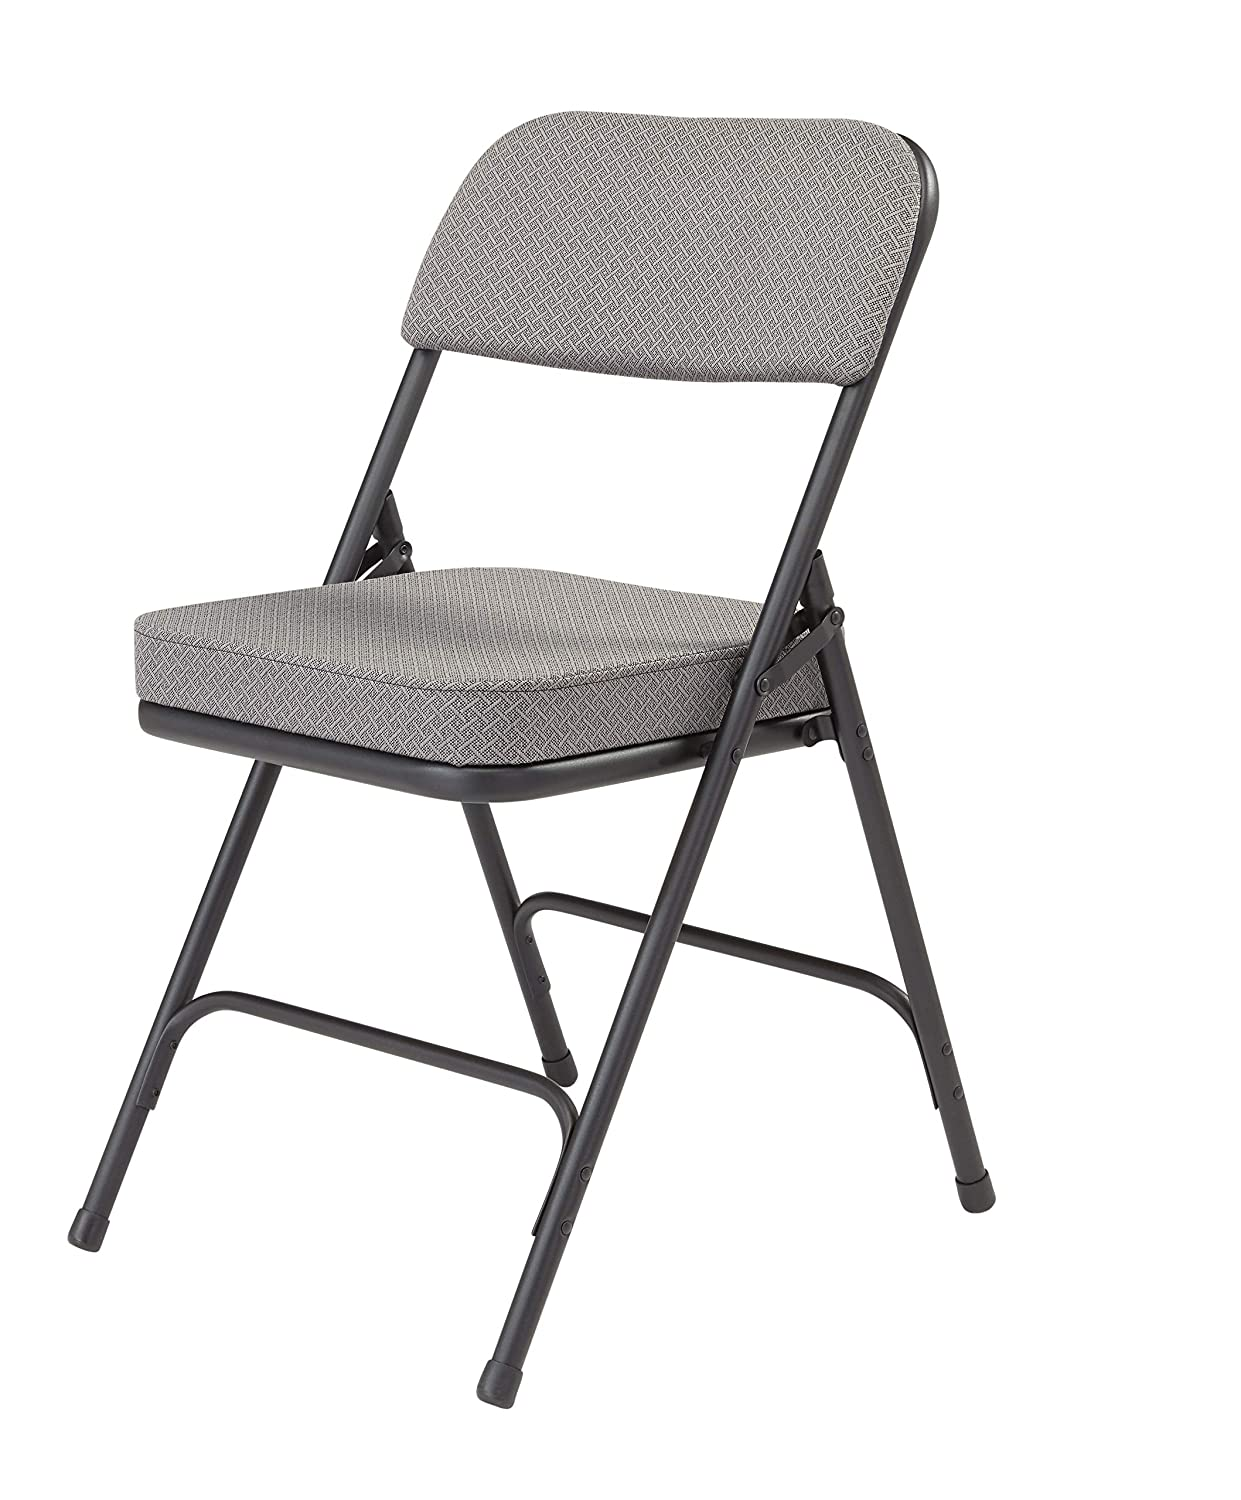 Oversized Folding Chairs For Heavy People Up To 1000 Lbs